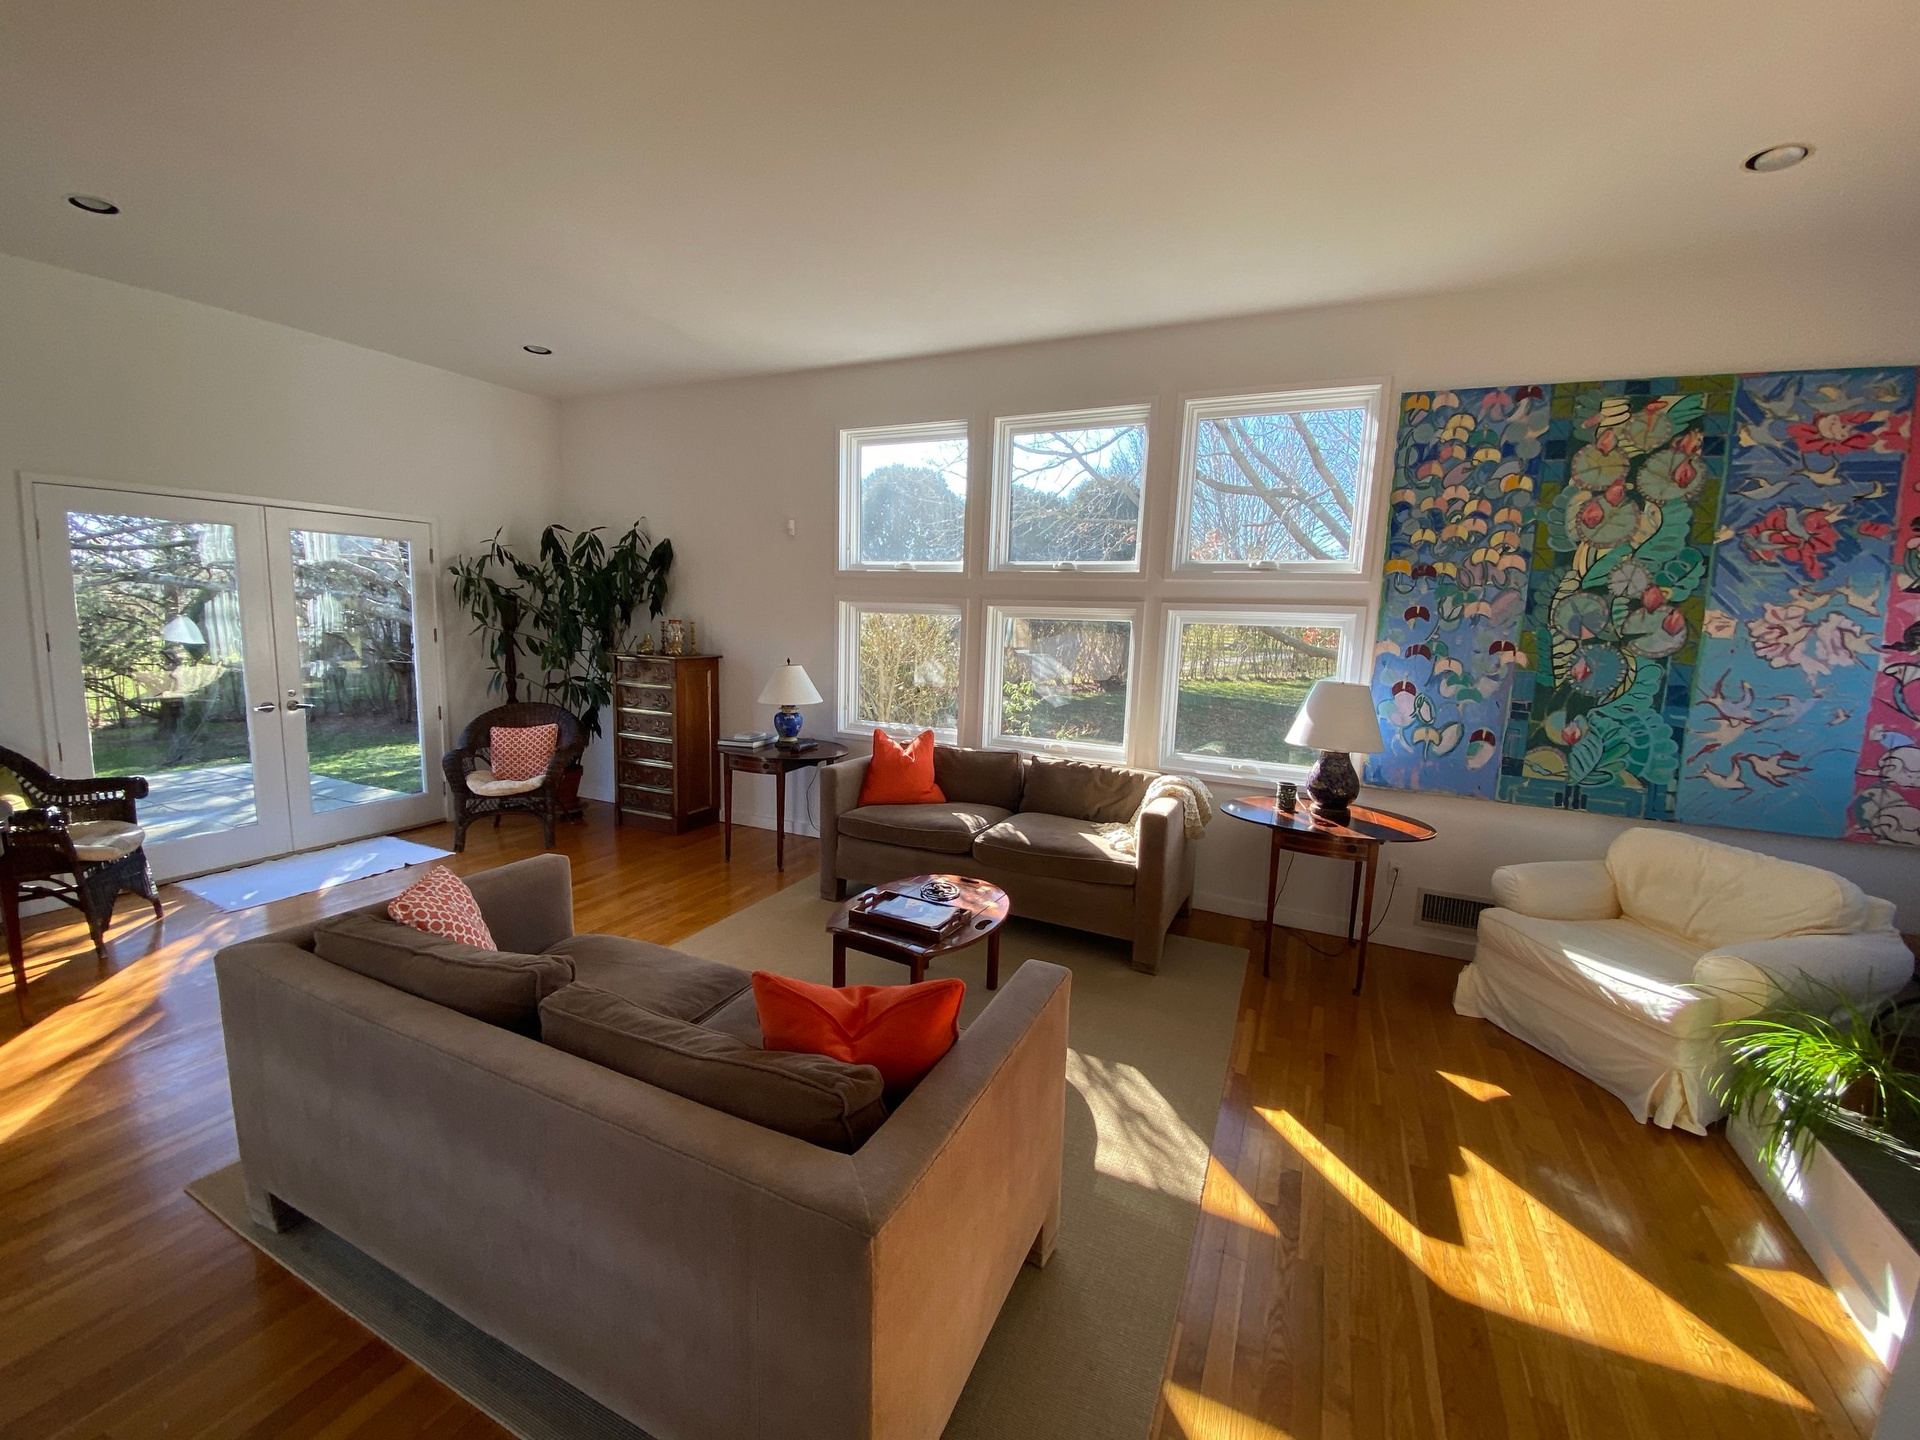 Beautiful open space with abundant natural light all day long